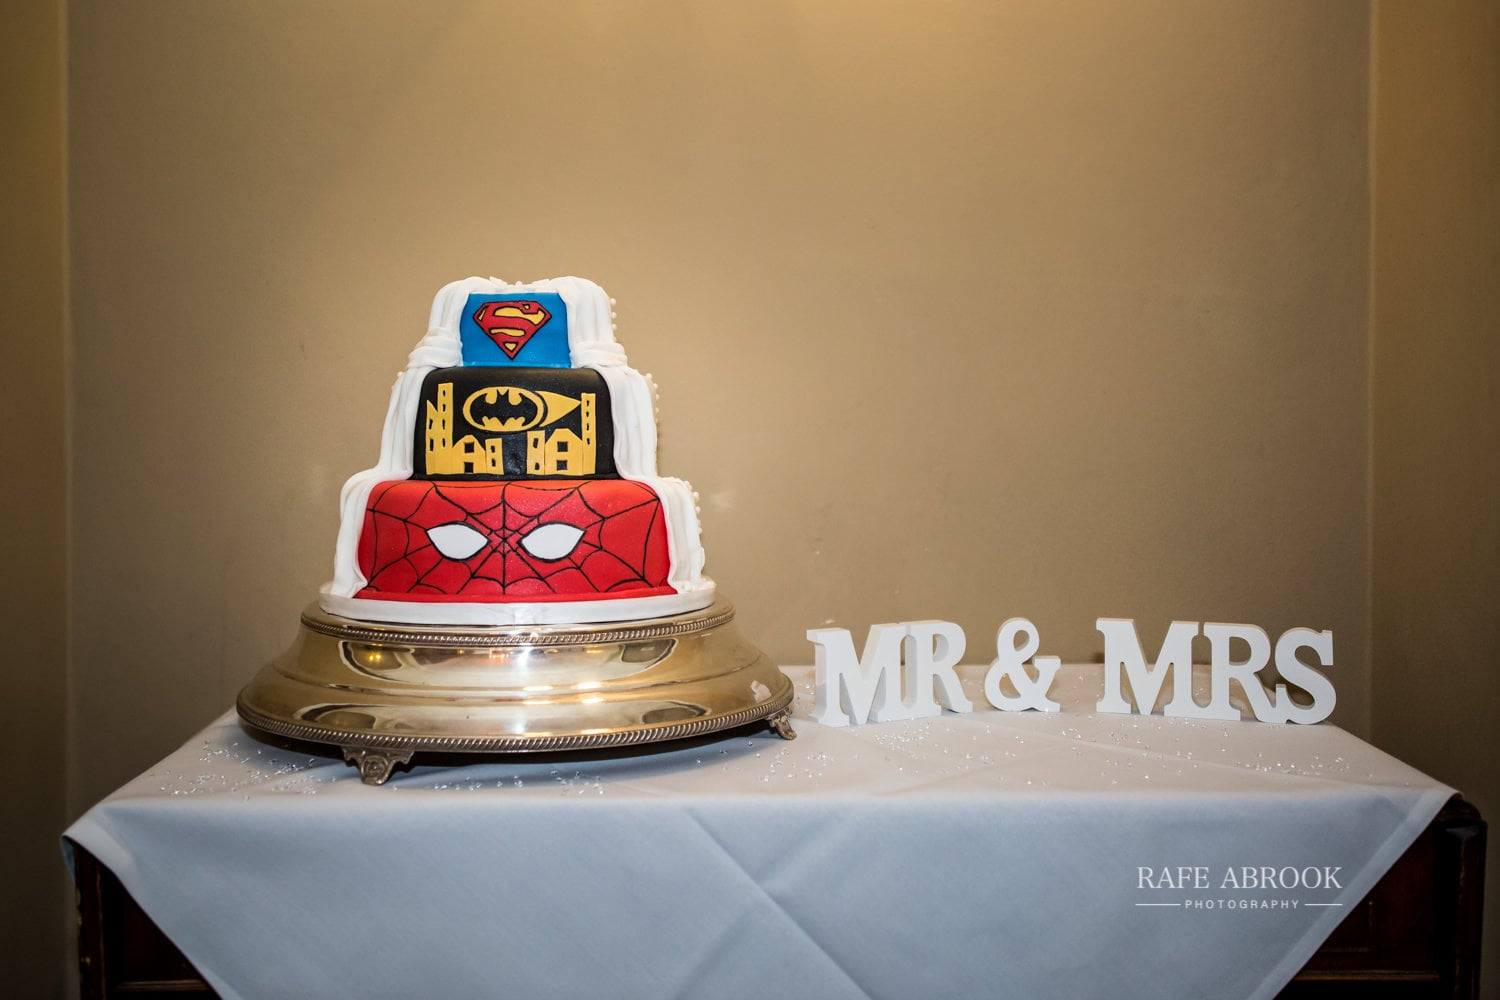 woodland manor hotel clapham bedford wedding hertfordshire wedding photographer-1167.jpg